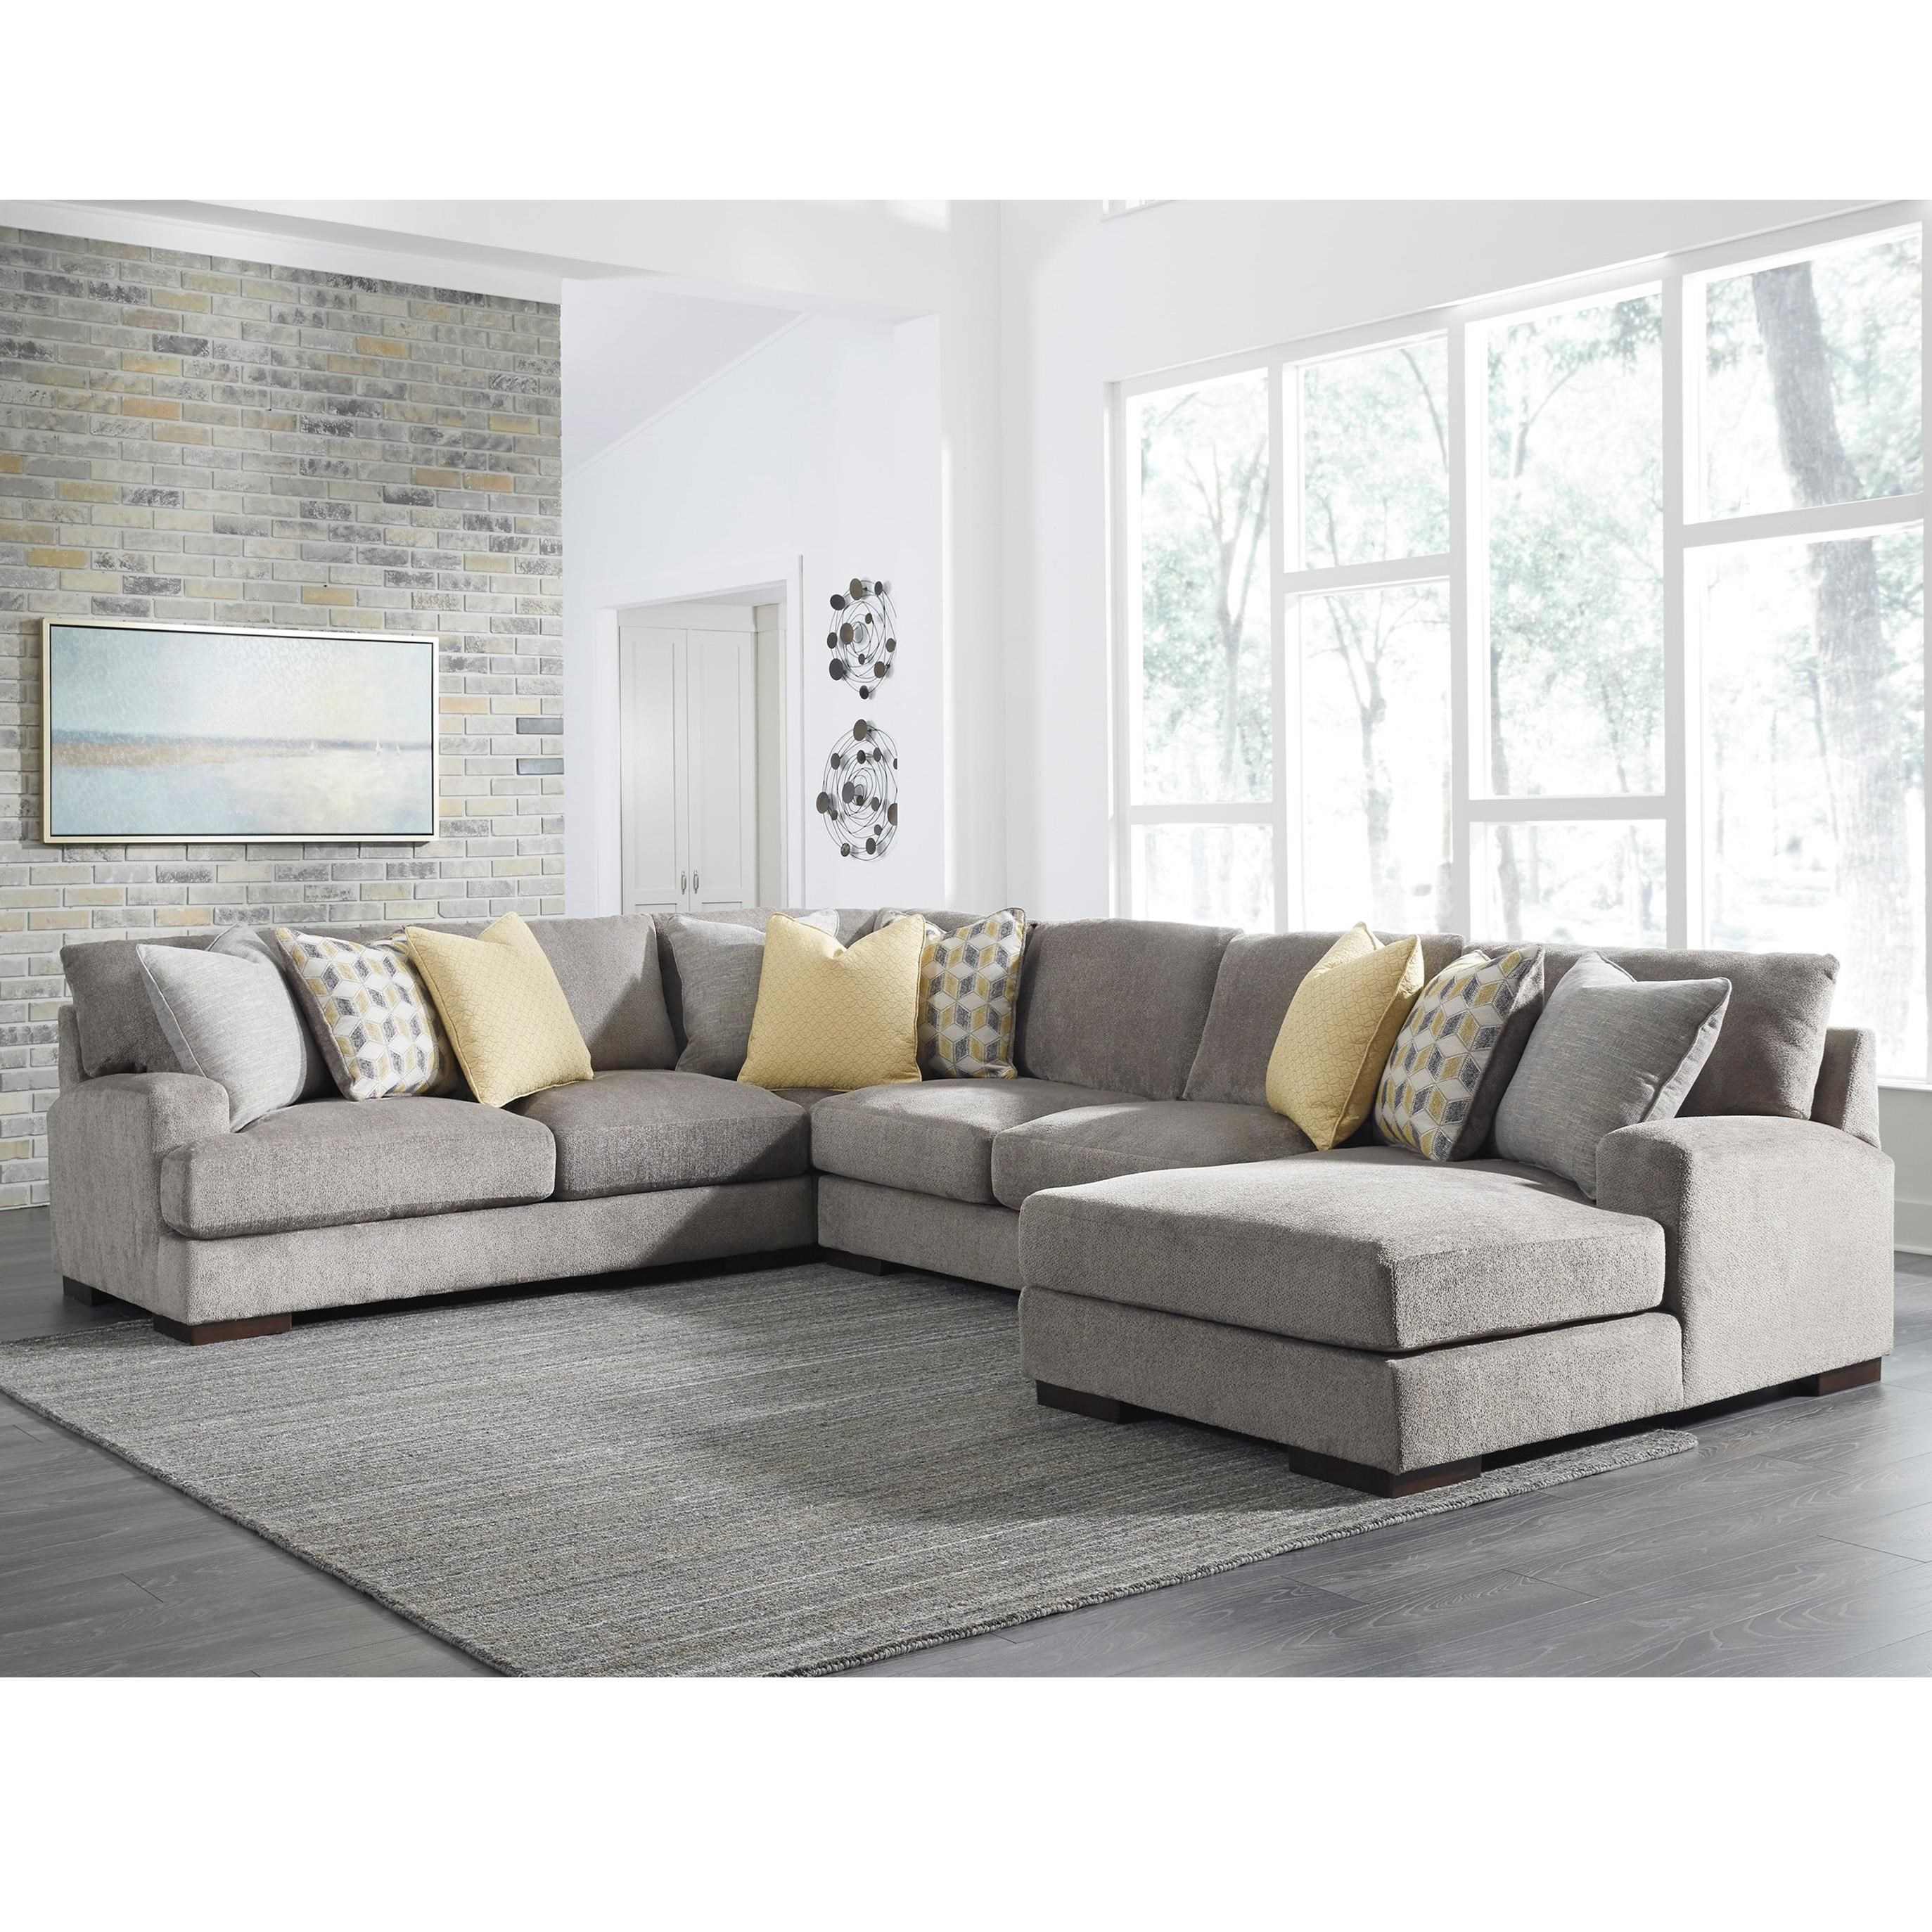 Fallsworth Contemporary 4 Piece Sectional By Benchcraft